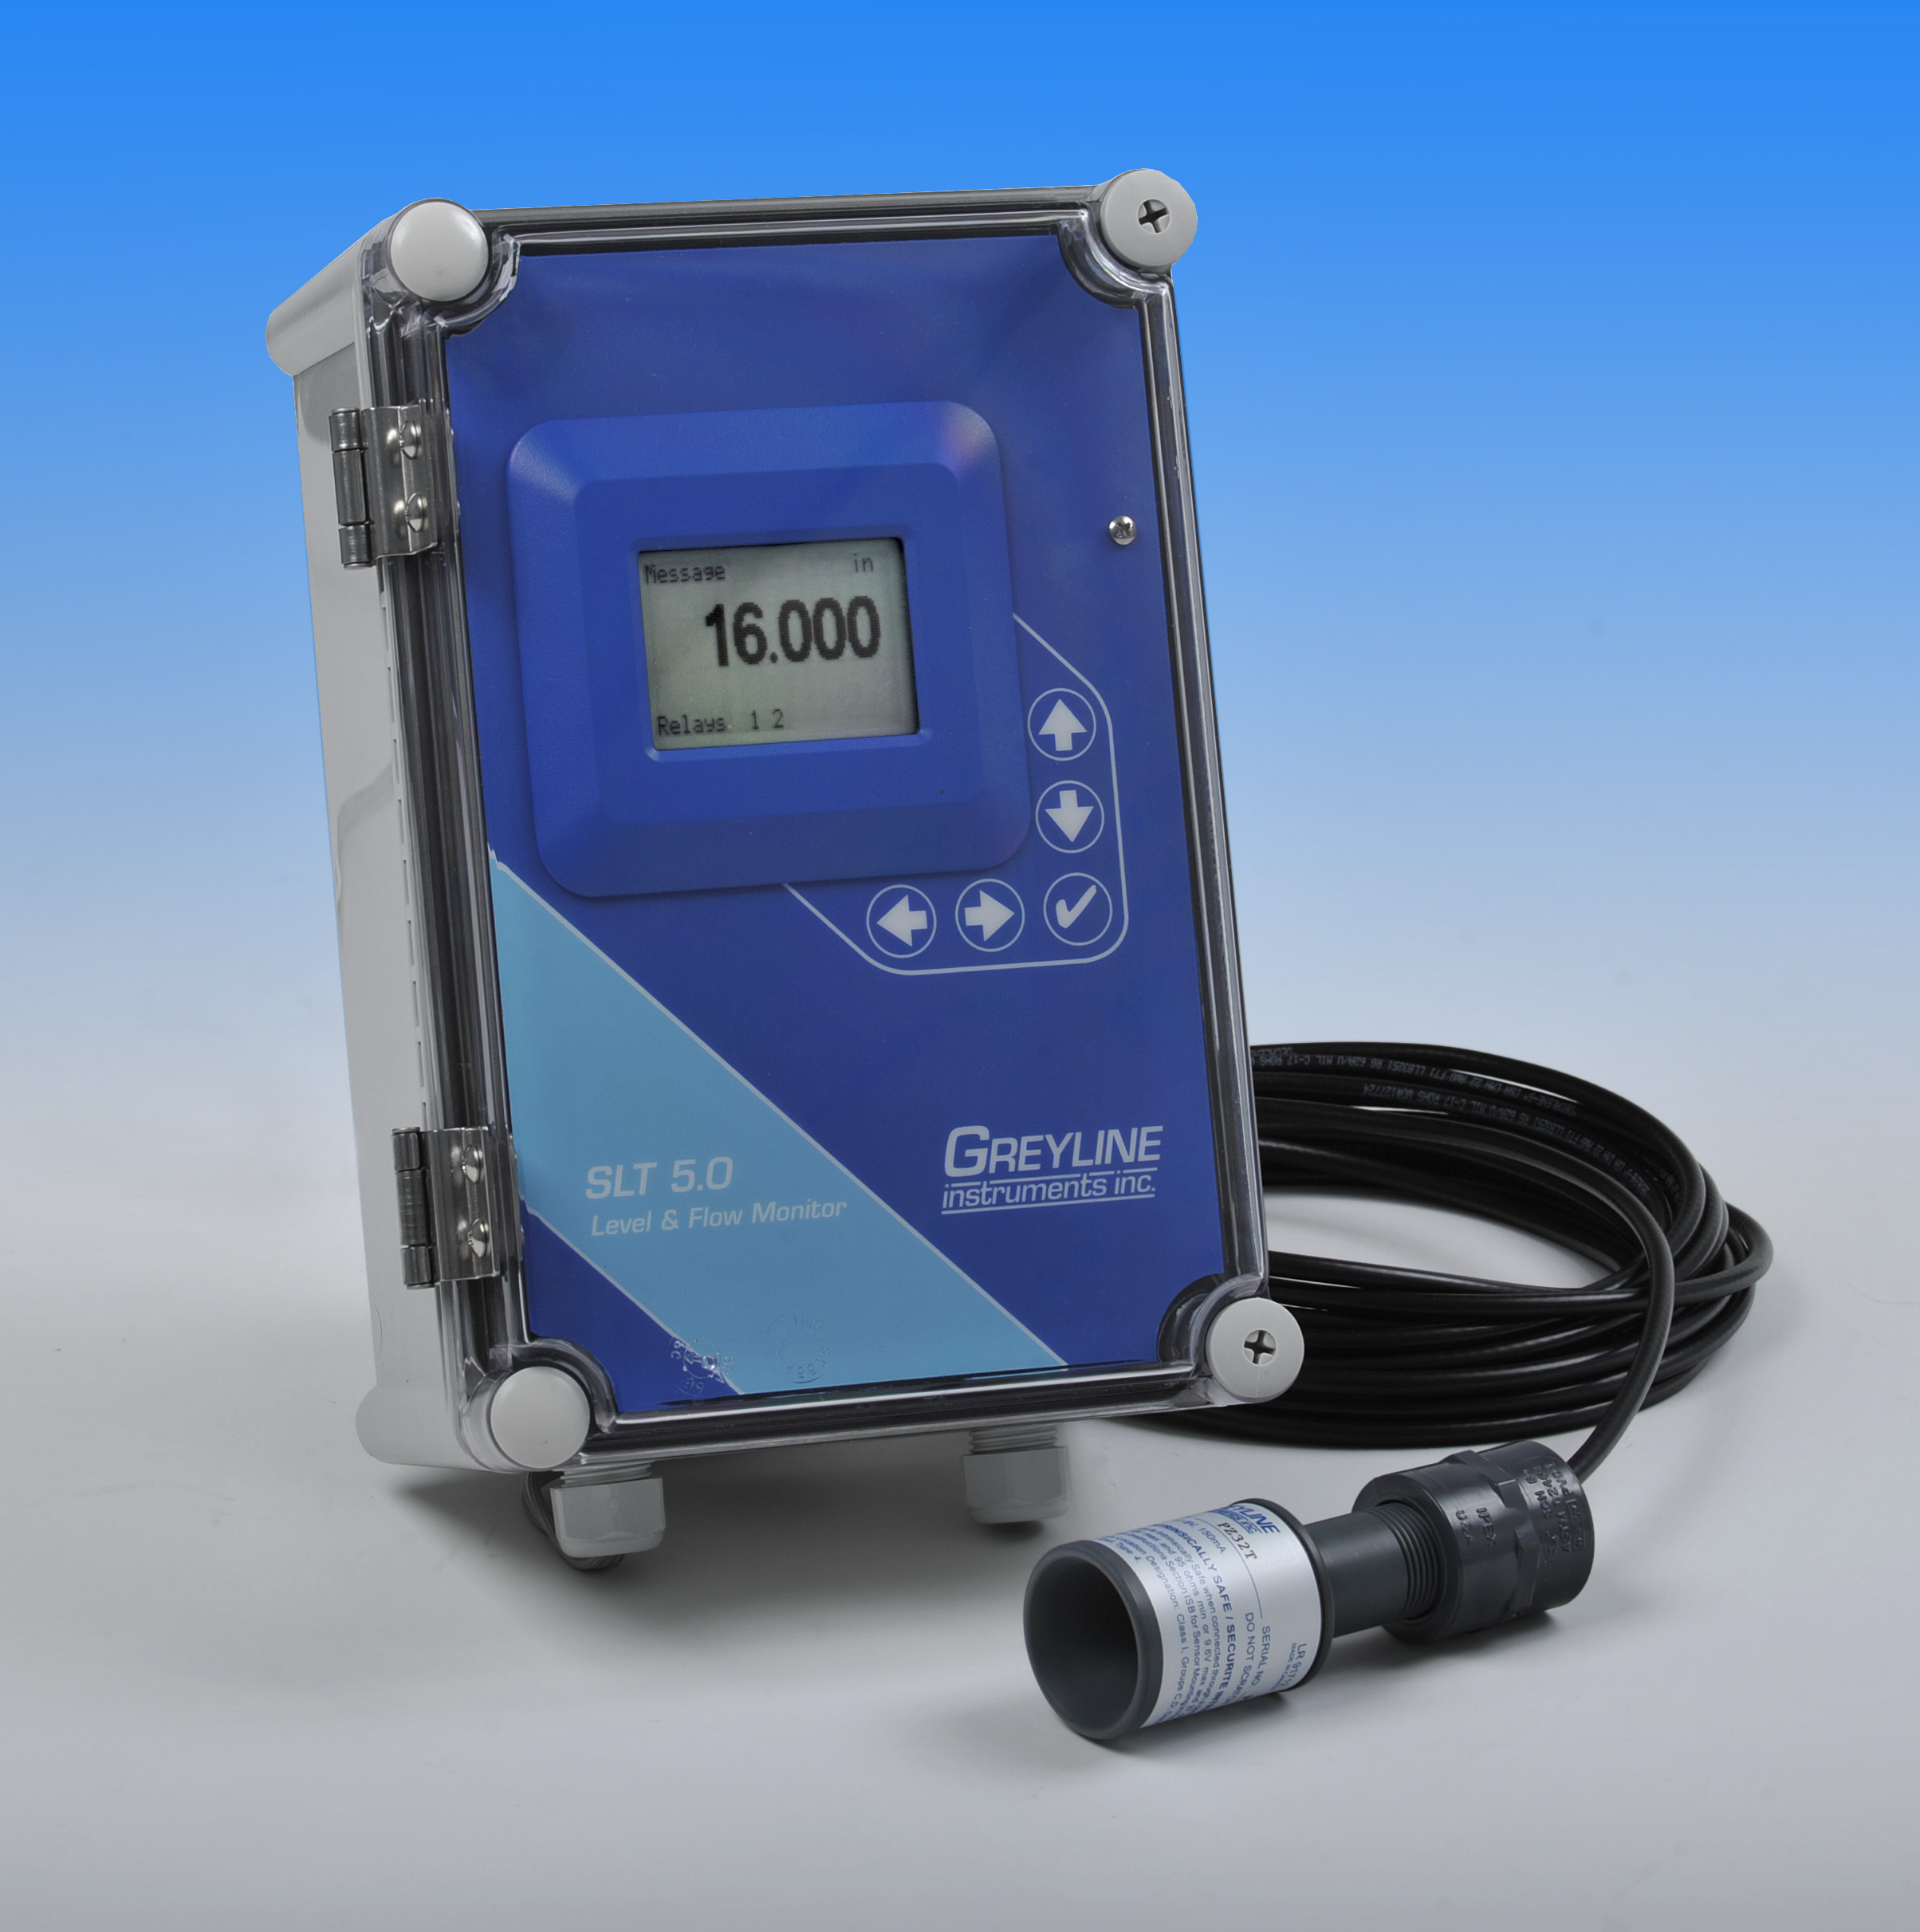 This new SLT 5.0 Level & Flow Monitor from Greyline Instruments features a non-contacting ultrasonic sensor and a simple, built-in 5-key calibration system. The SLT 5.0 can be used as a level transmitter for tank inventory applications with continuous dis